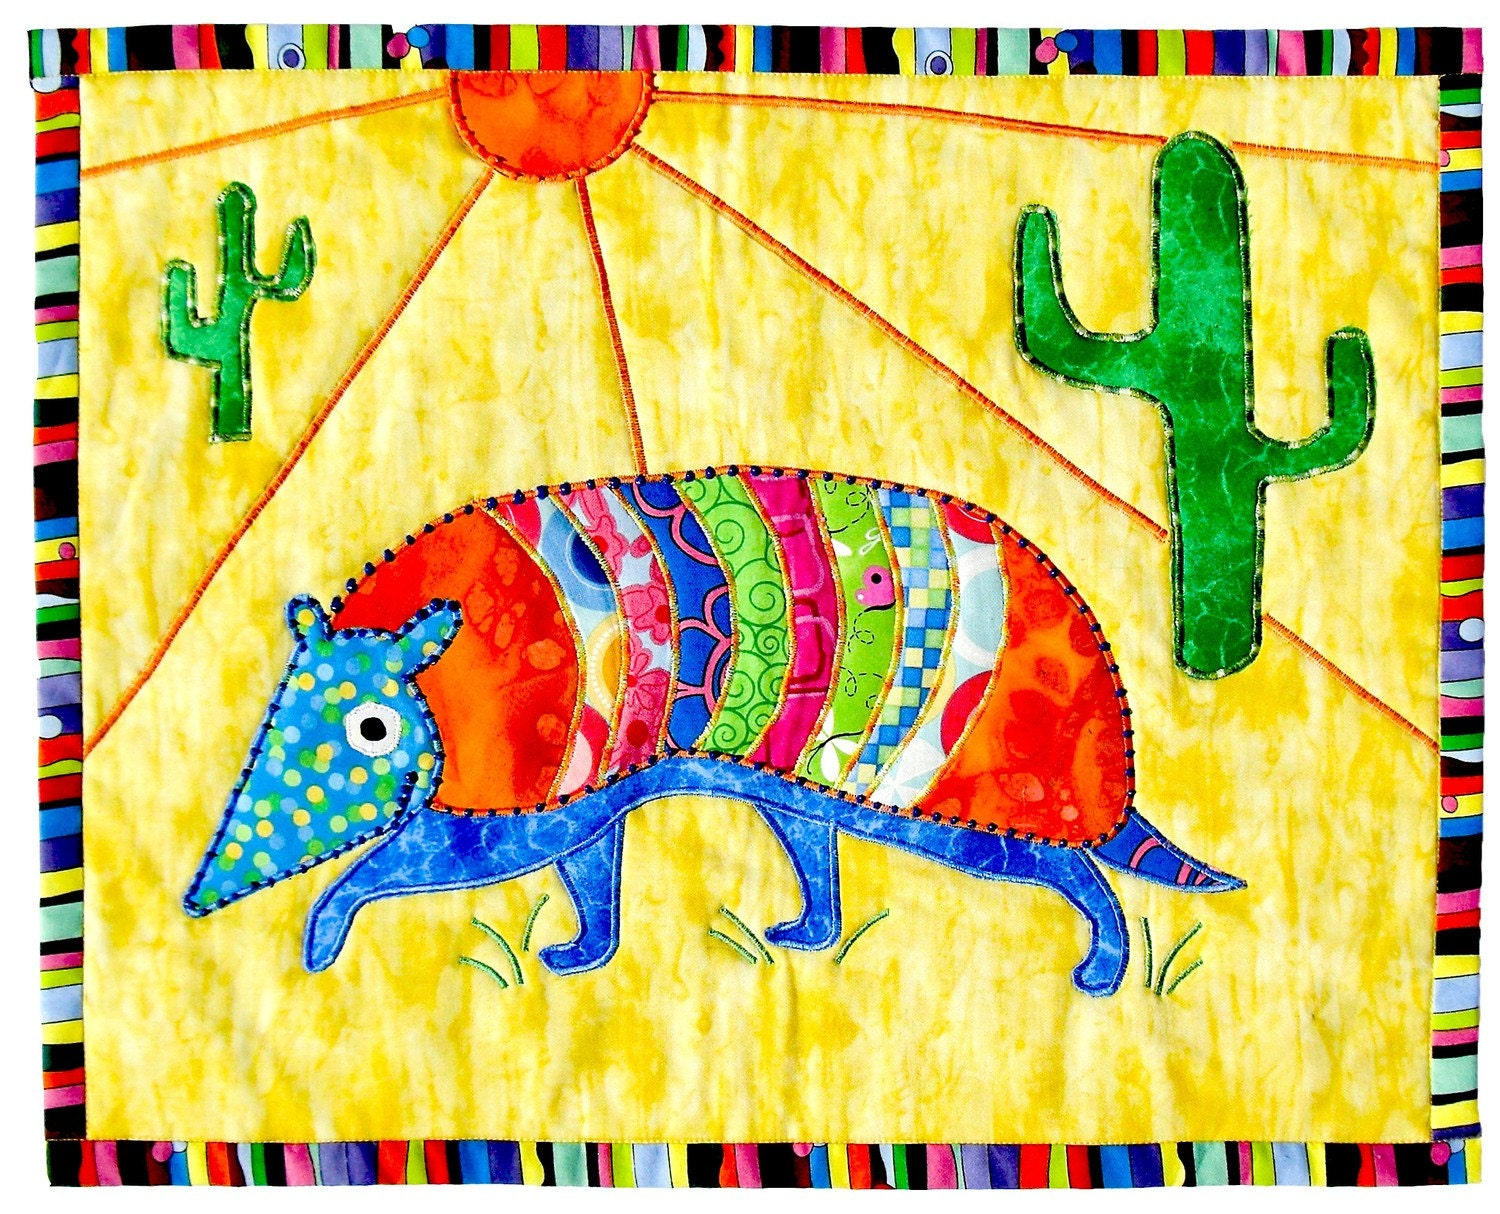 Line Art Quilt Kit : Armadillo art wall hanging quilt kit by kidsquilttoo